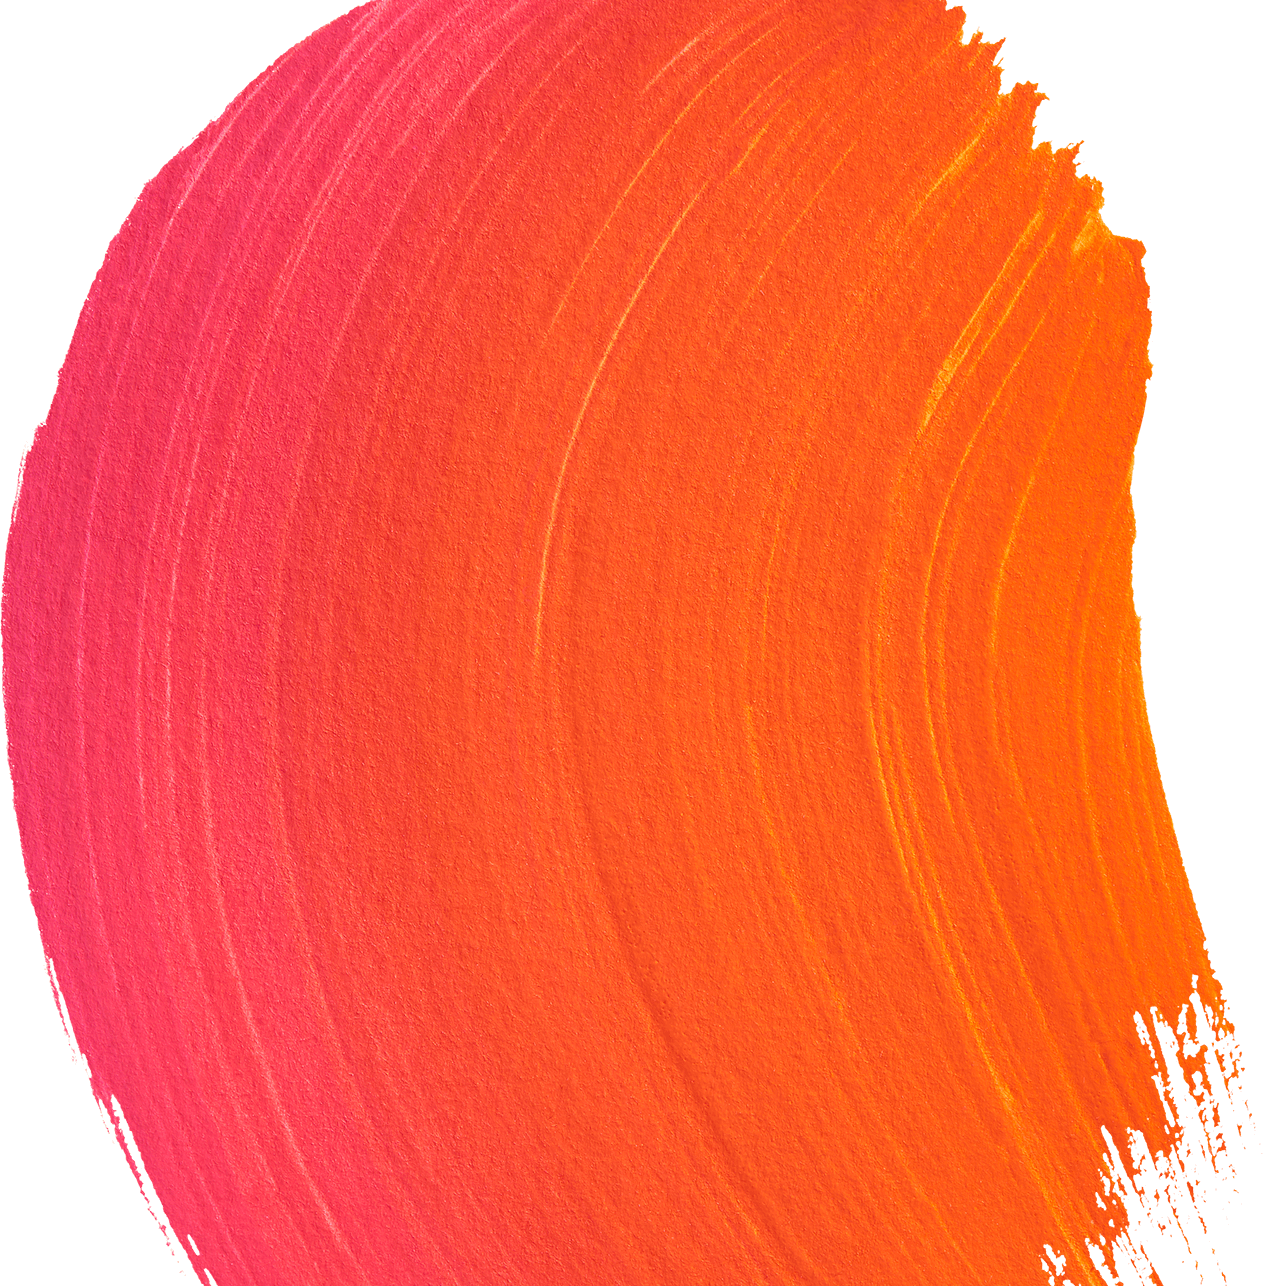 mondi_brush_orange-cerise-1-lores_rotate_Crop.png (1)